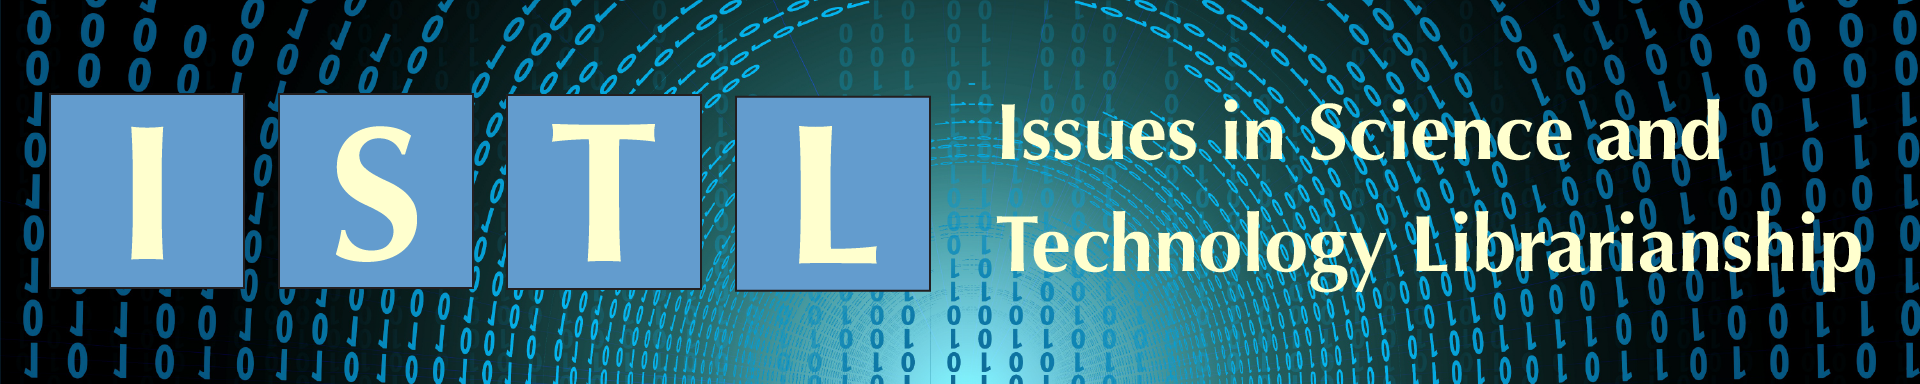 ISTL: Issues in Science and Technology Librarianship